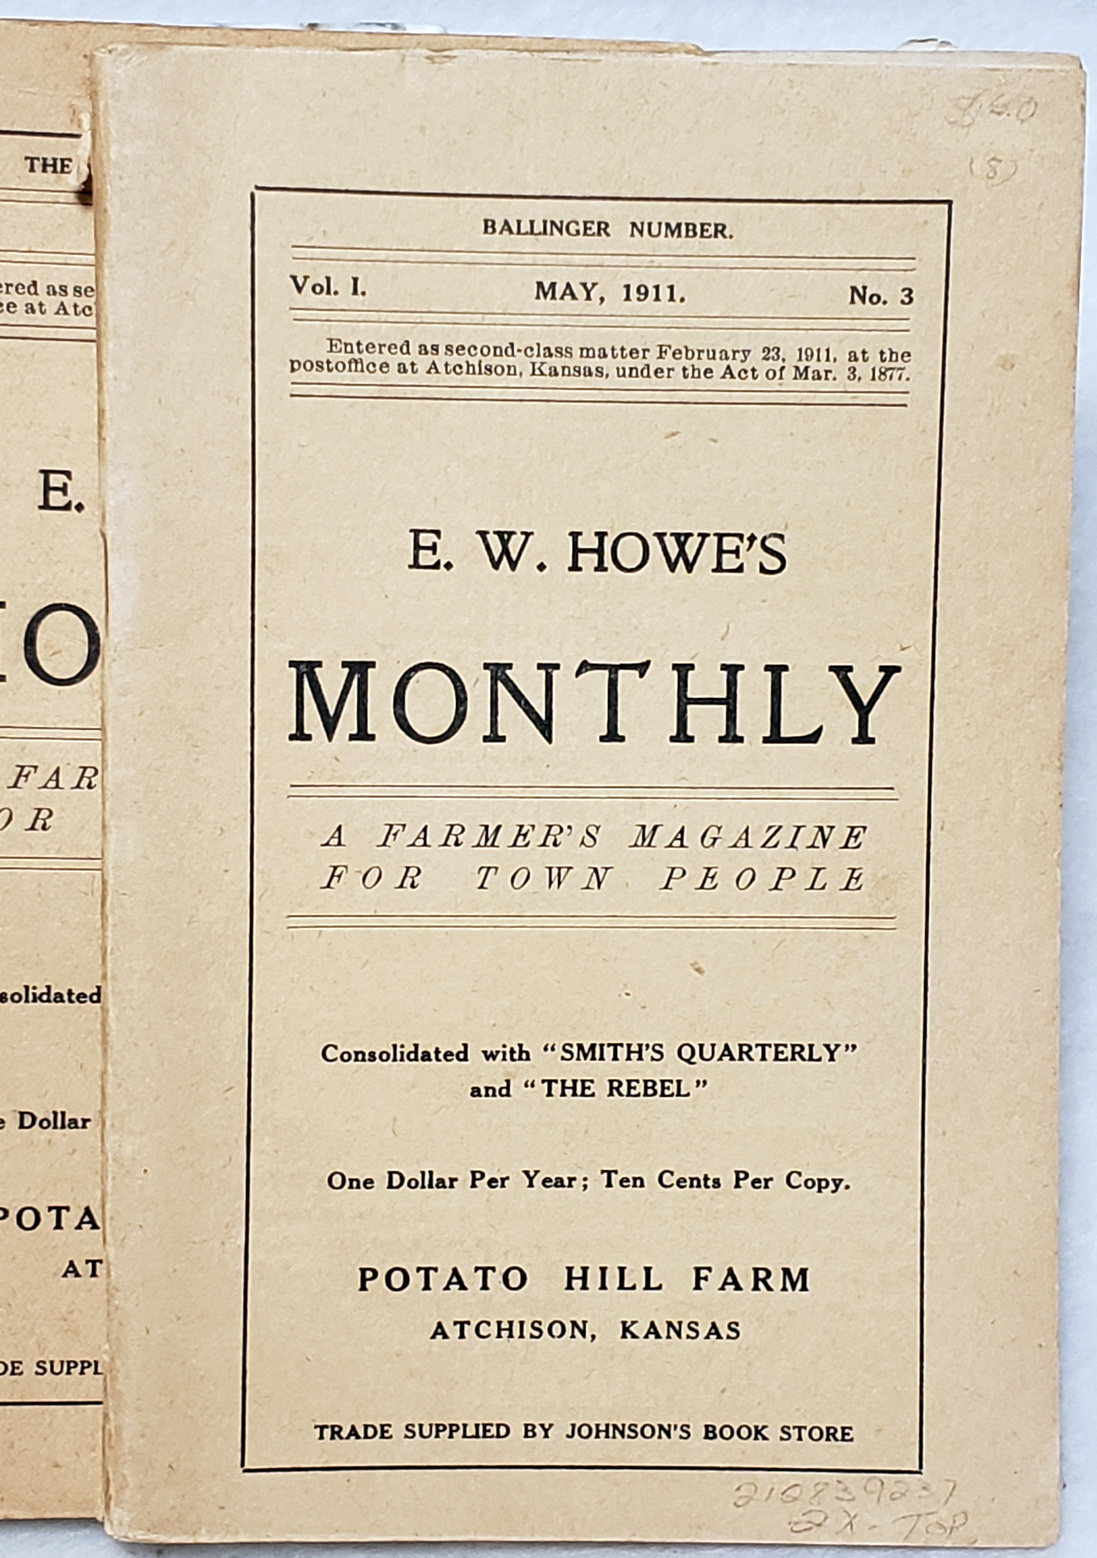 Image for E. W. Howe's Monthly:  A Farmer's Magazine for Town People, Vol. I, Nos 3, 9, 11; and Vol. II, Nos. 1, 5, 9, 10, 11